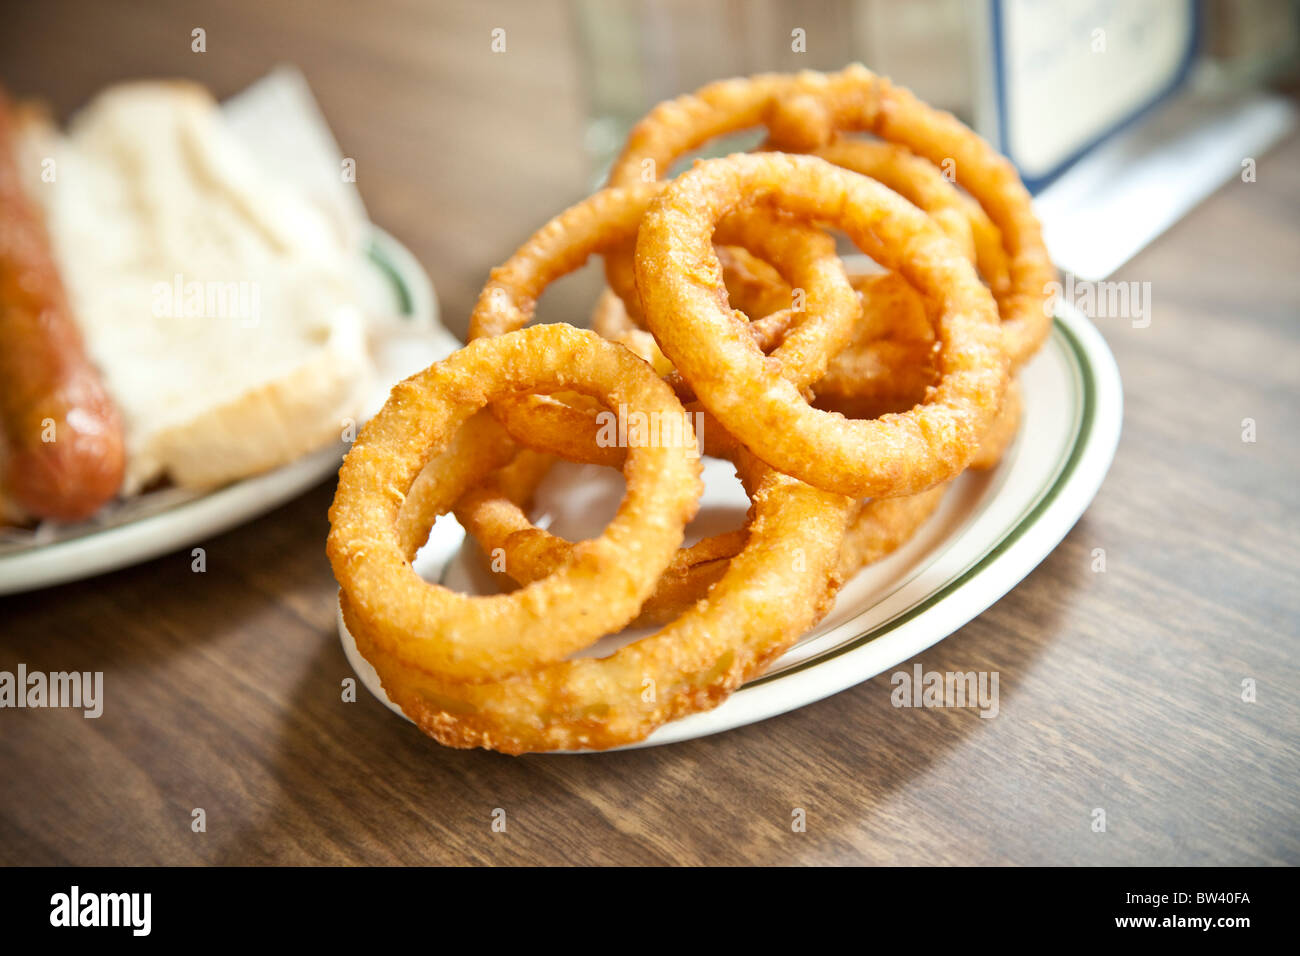 Plate of onion rings and hot dog on wooden countertop - Stock Image